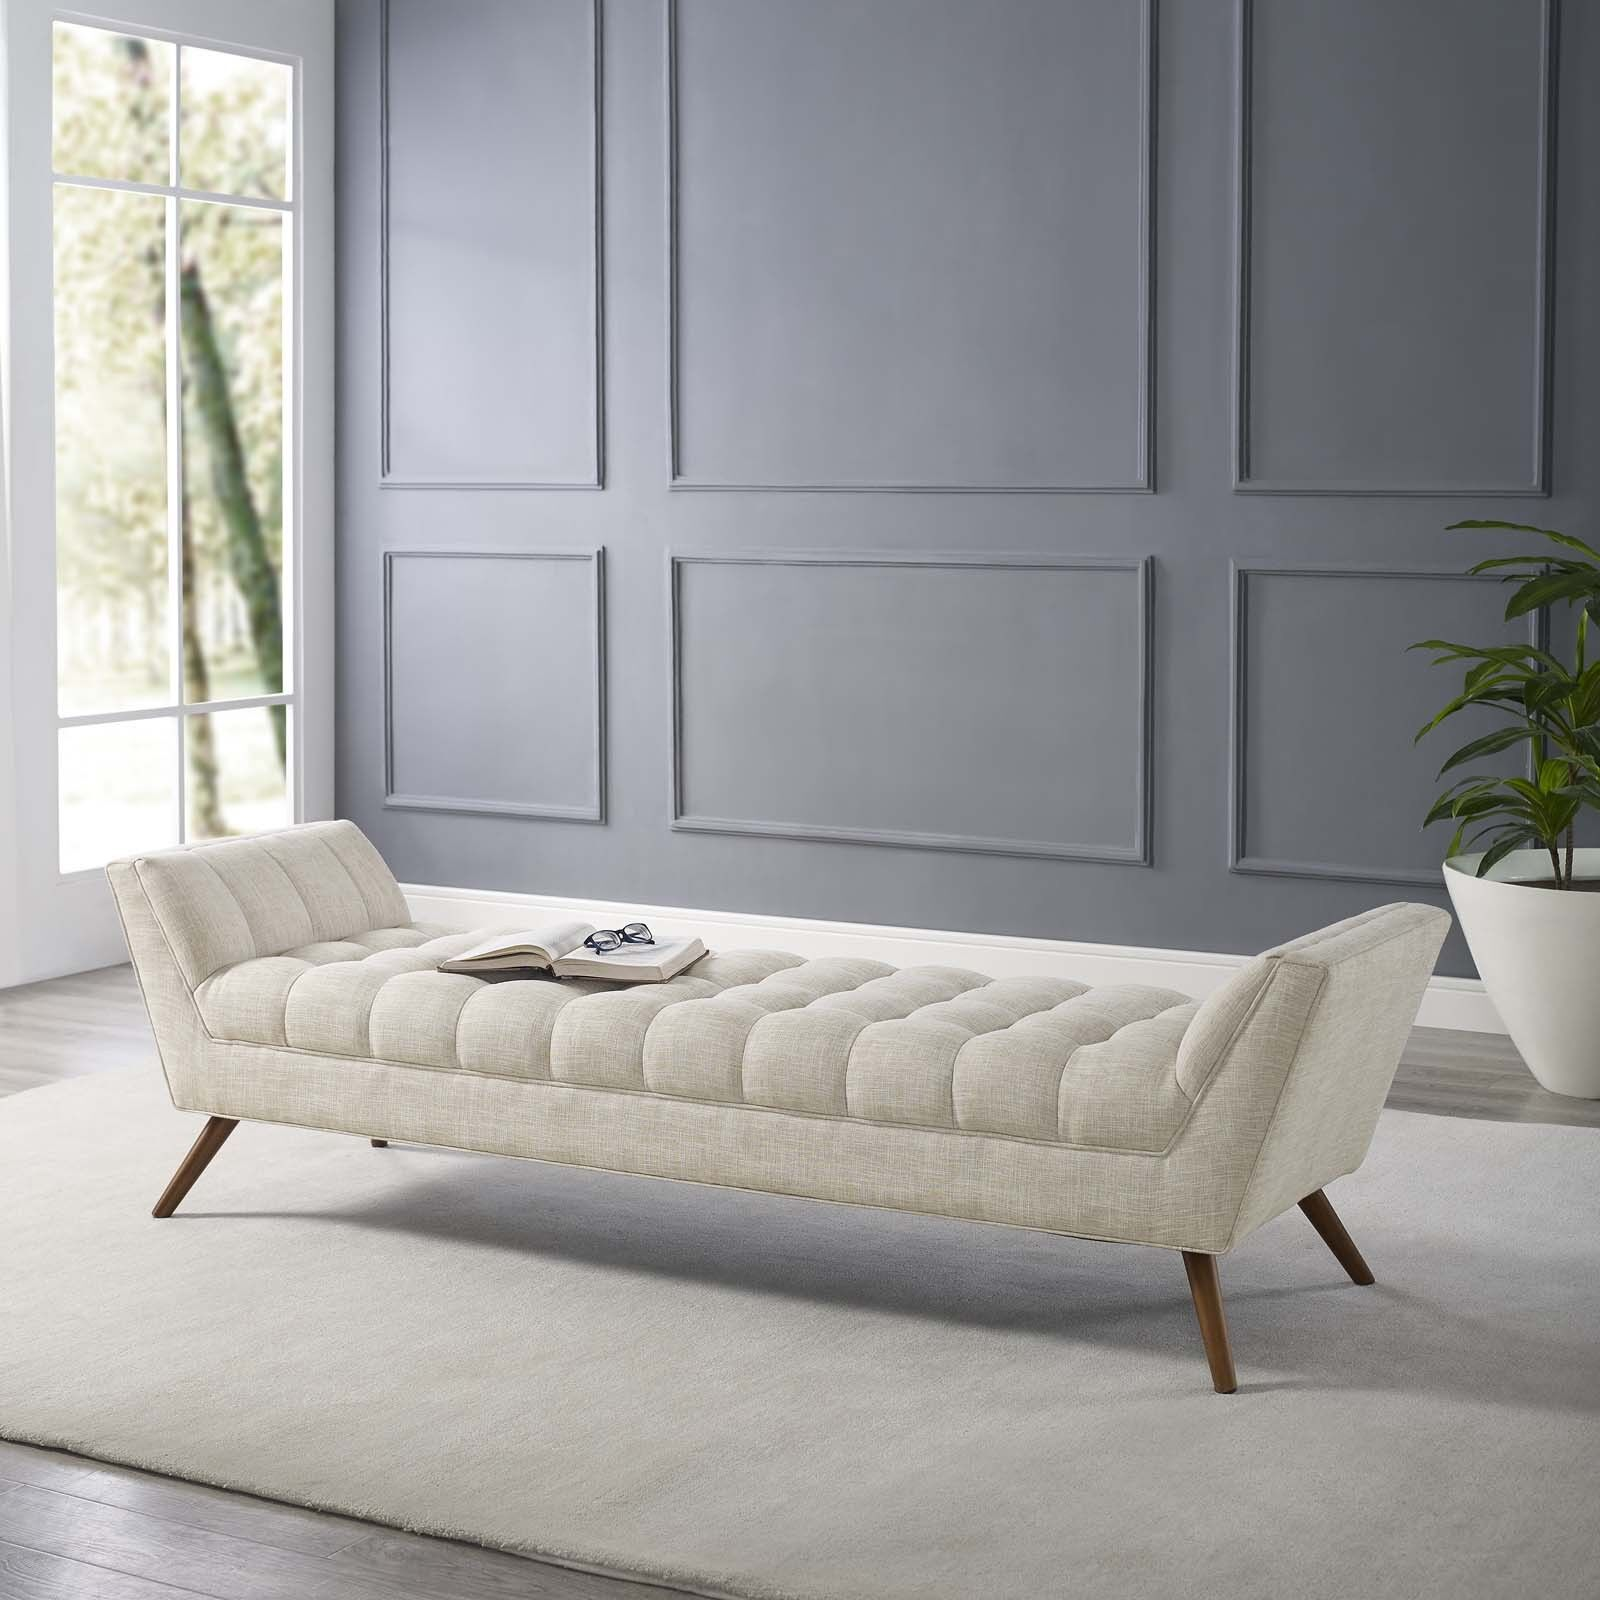 Mid-Century Modern Tufted Beige Upholstered Fabric 53